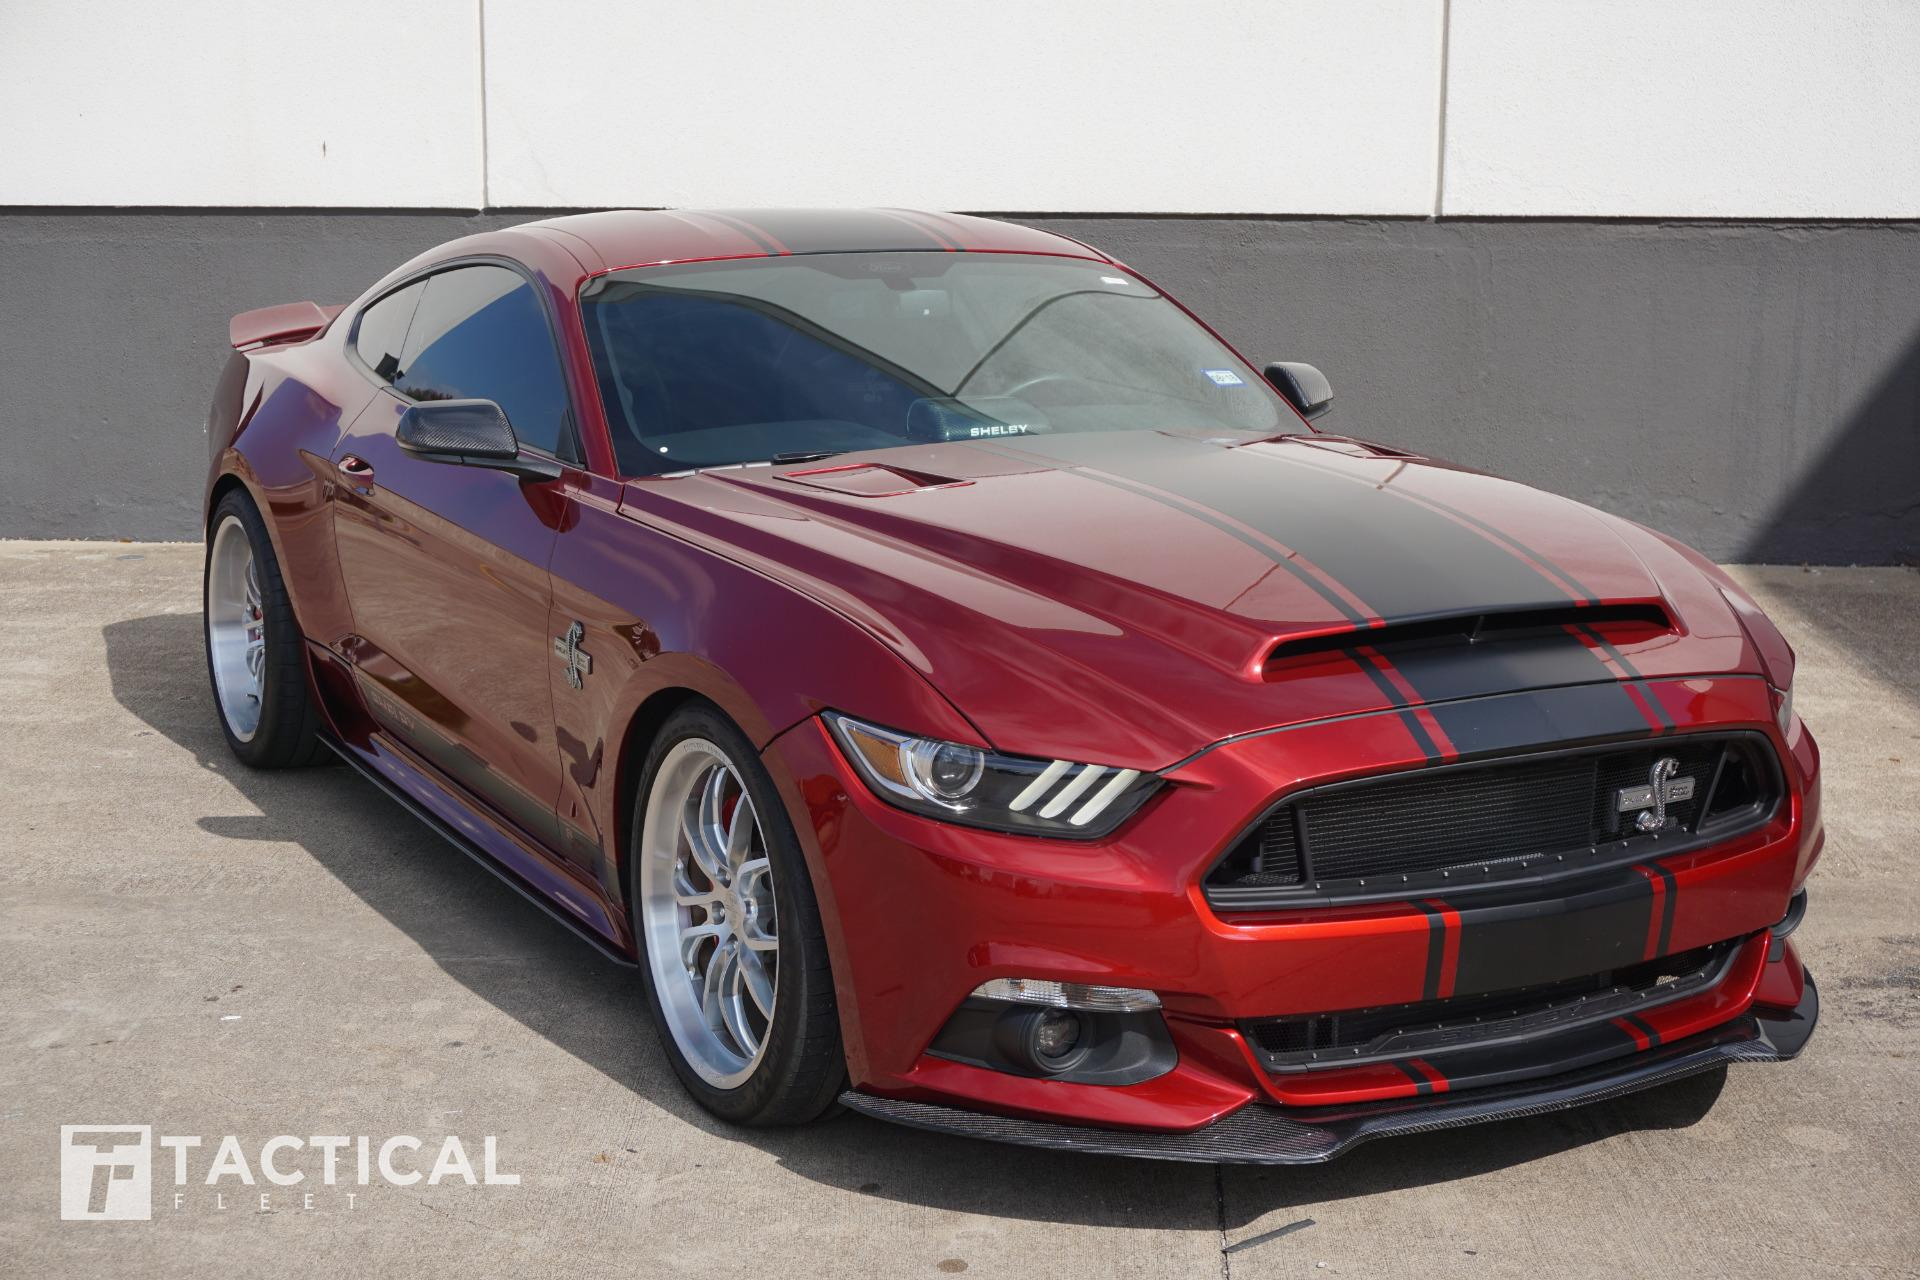 Used 2015 Ford Mustang Supersnake Concept Car For Sale 134 900